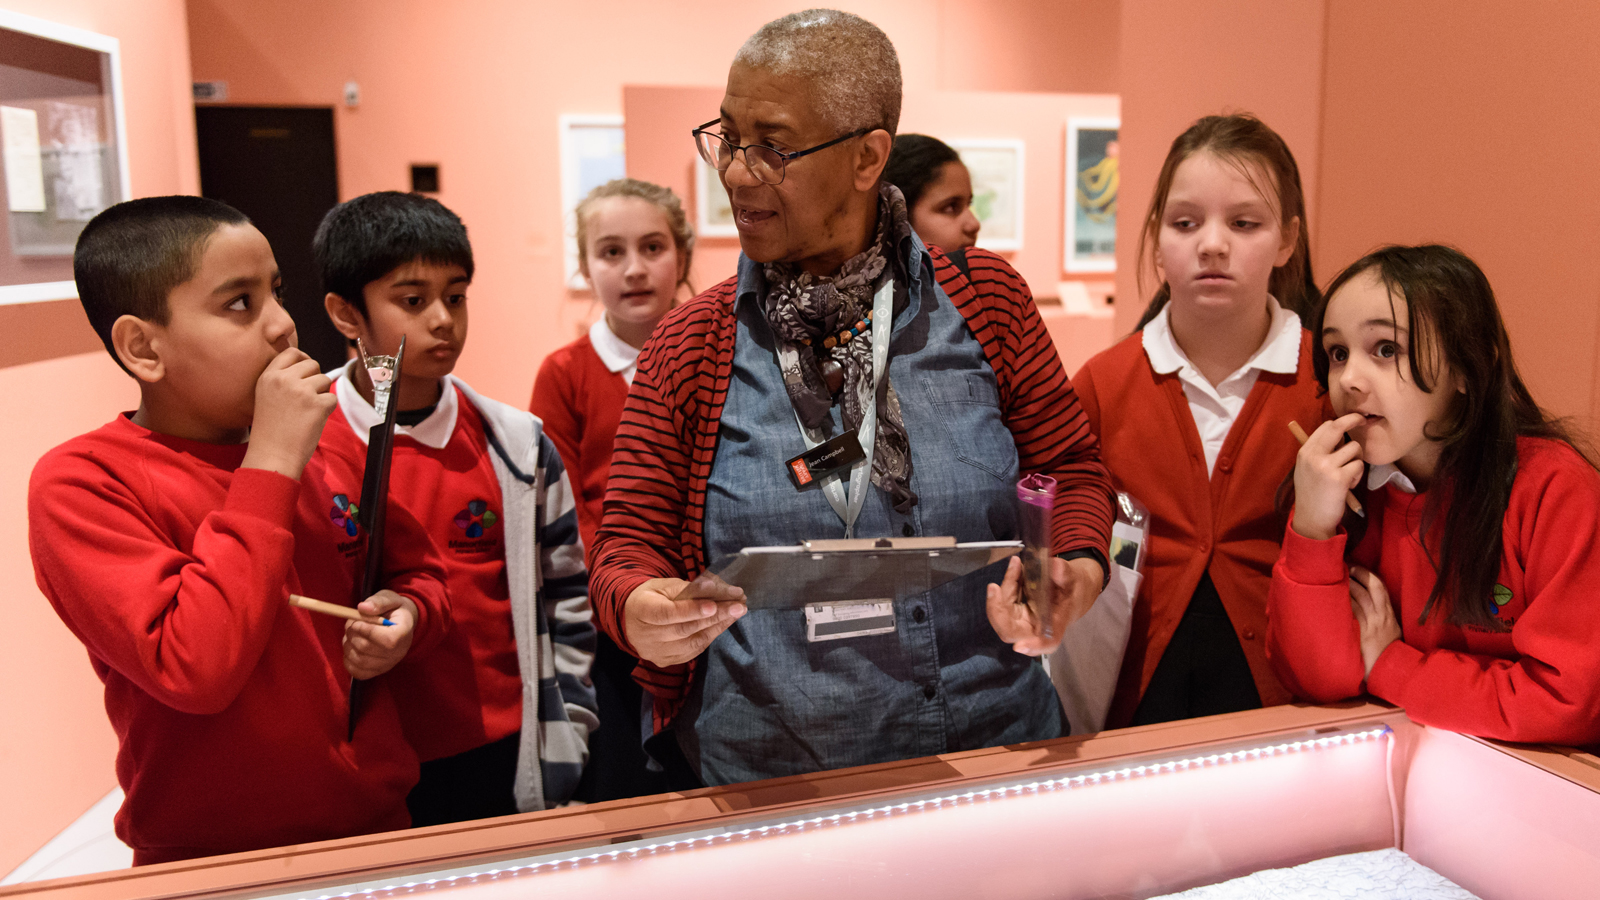 Thumbnail for Primary workshops - group of students with workshop leader in exhibition space